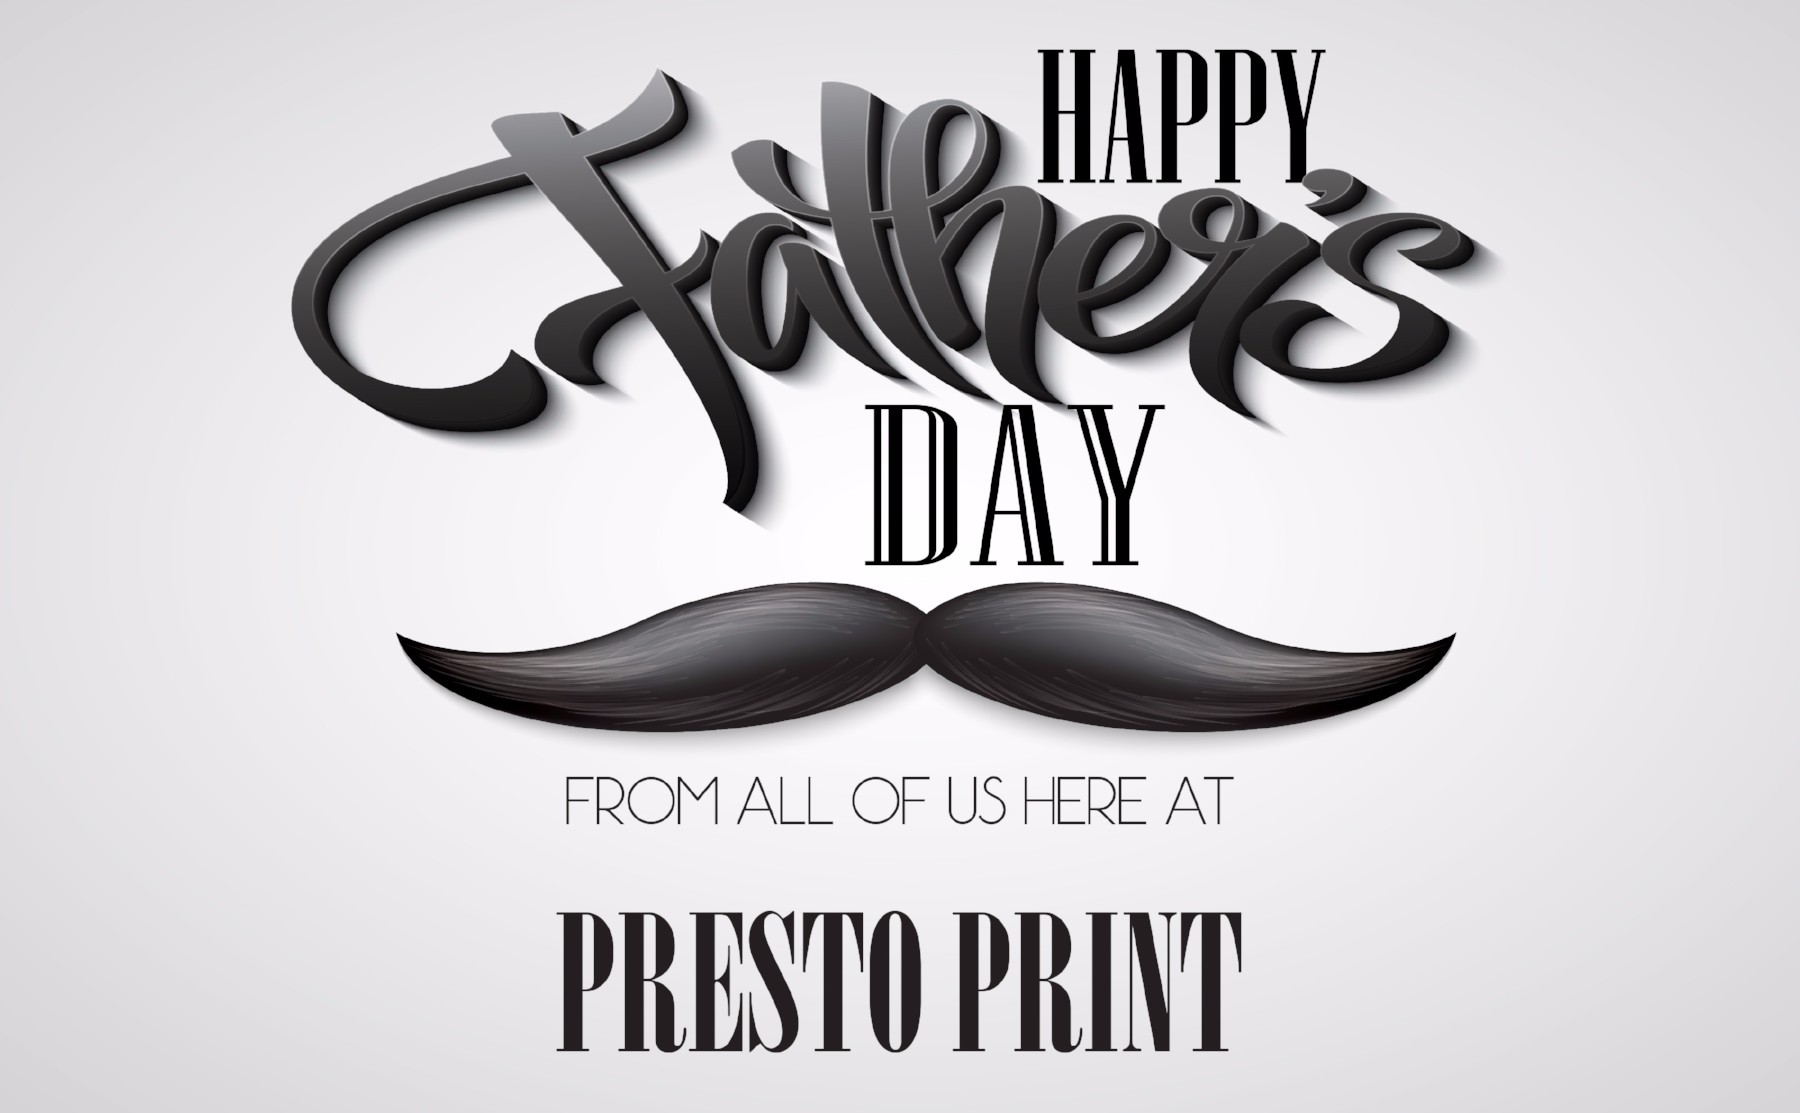 Happy Father's Day mustache from Presto Print